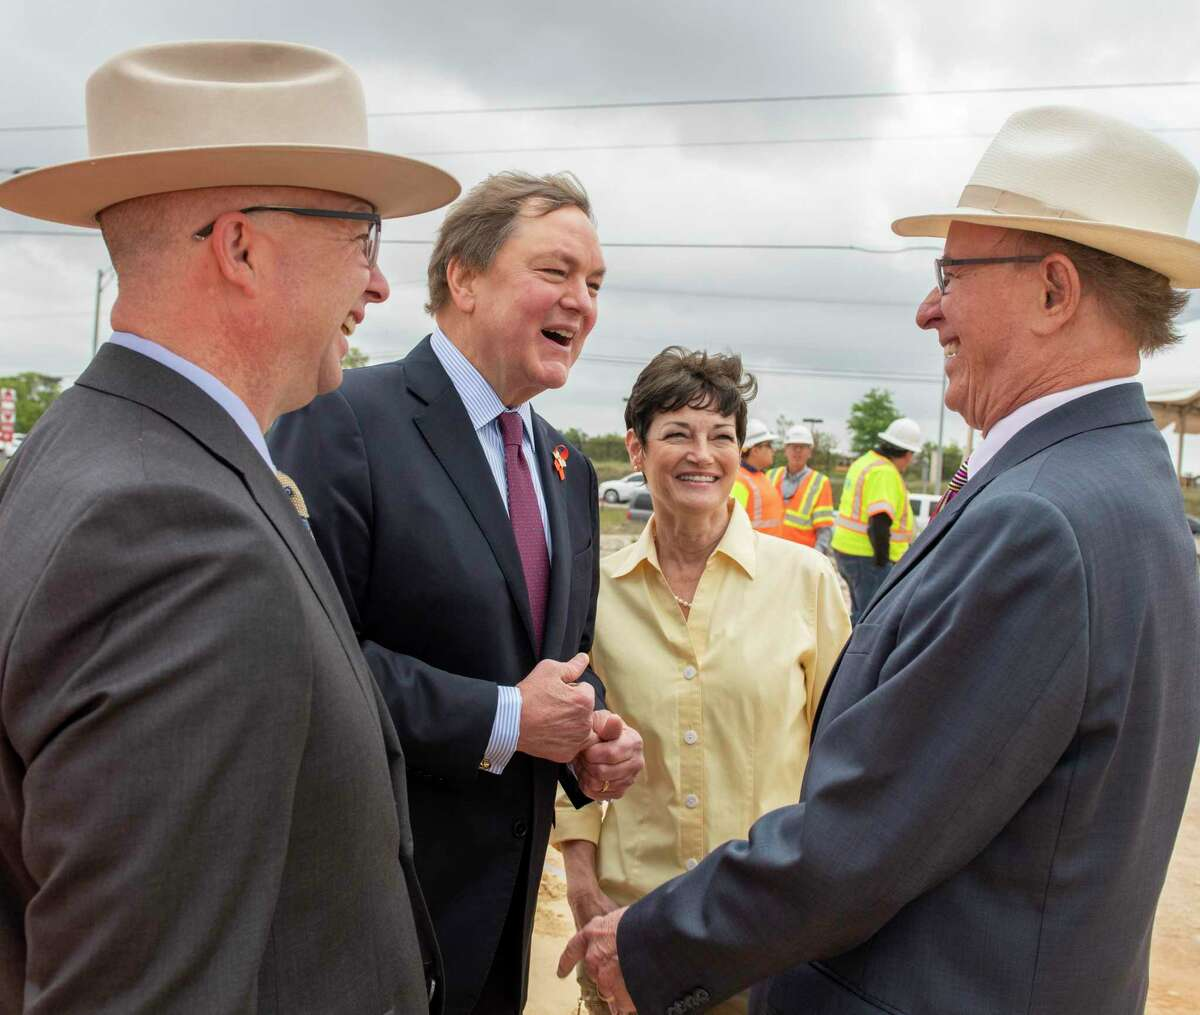 """Bexar County Commissioner Kevin Wolff, from left, Texas Transportation Commission Chairman J. Bruce Bugg Jr., state Sen. Donna Campbell and Bexar County Judge Nelson Wolff talk during a March 2019 groundbreaking on a U.S. 281 construction project. """"I'm a preacher of relationships,"""" Bugg says. """"Those relationships were built by the ability to really sit down and communicate."""""""